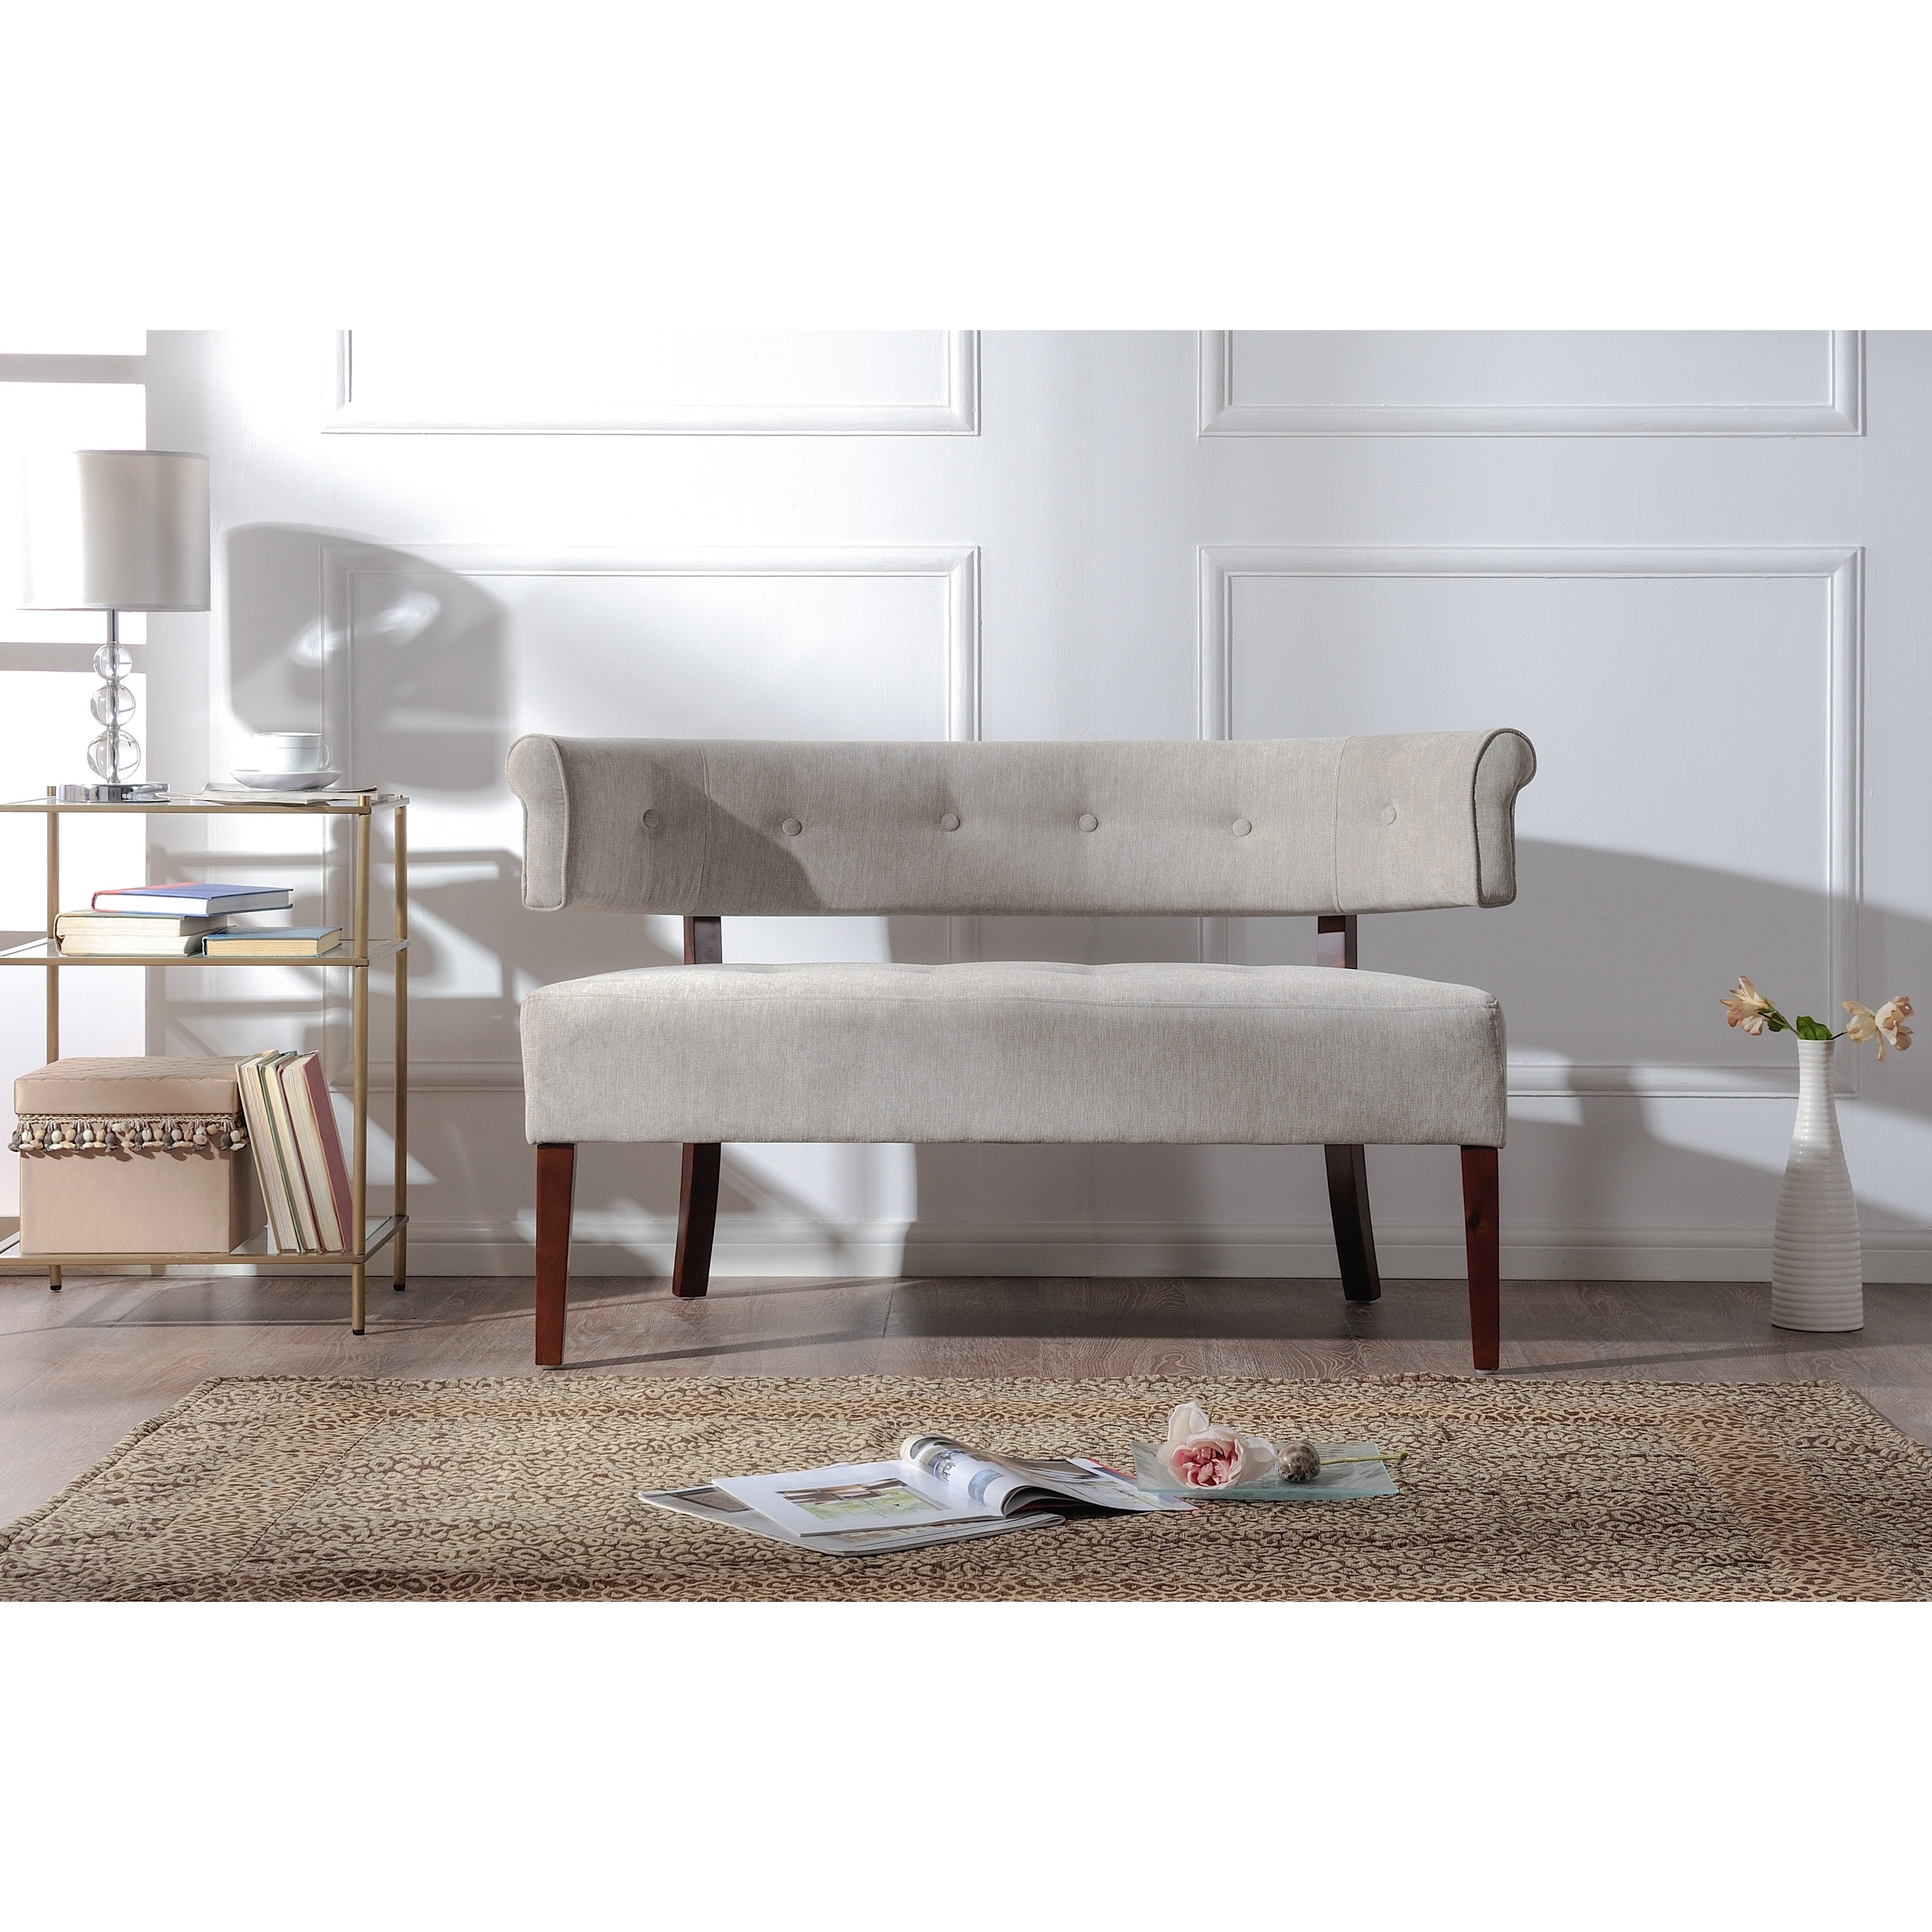 home blvd overstock tufted high lincoln free bench settee charcoal today ecce back garden shipping product harper